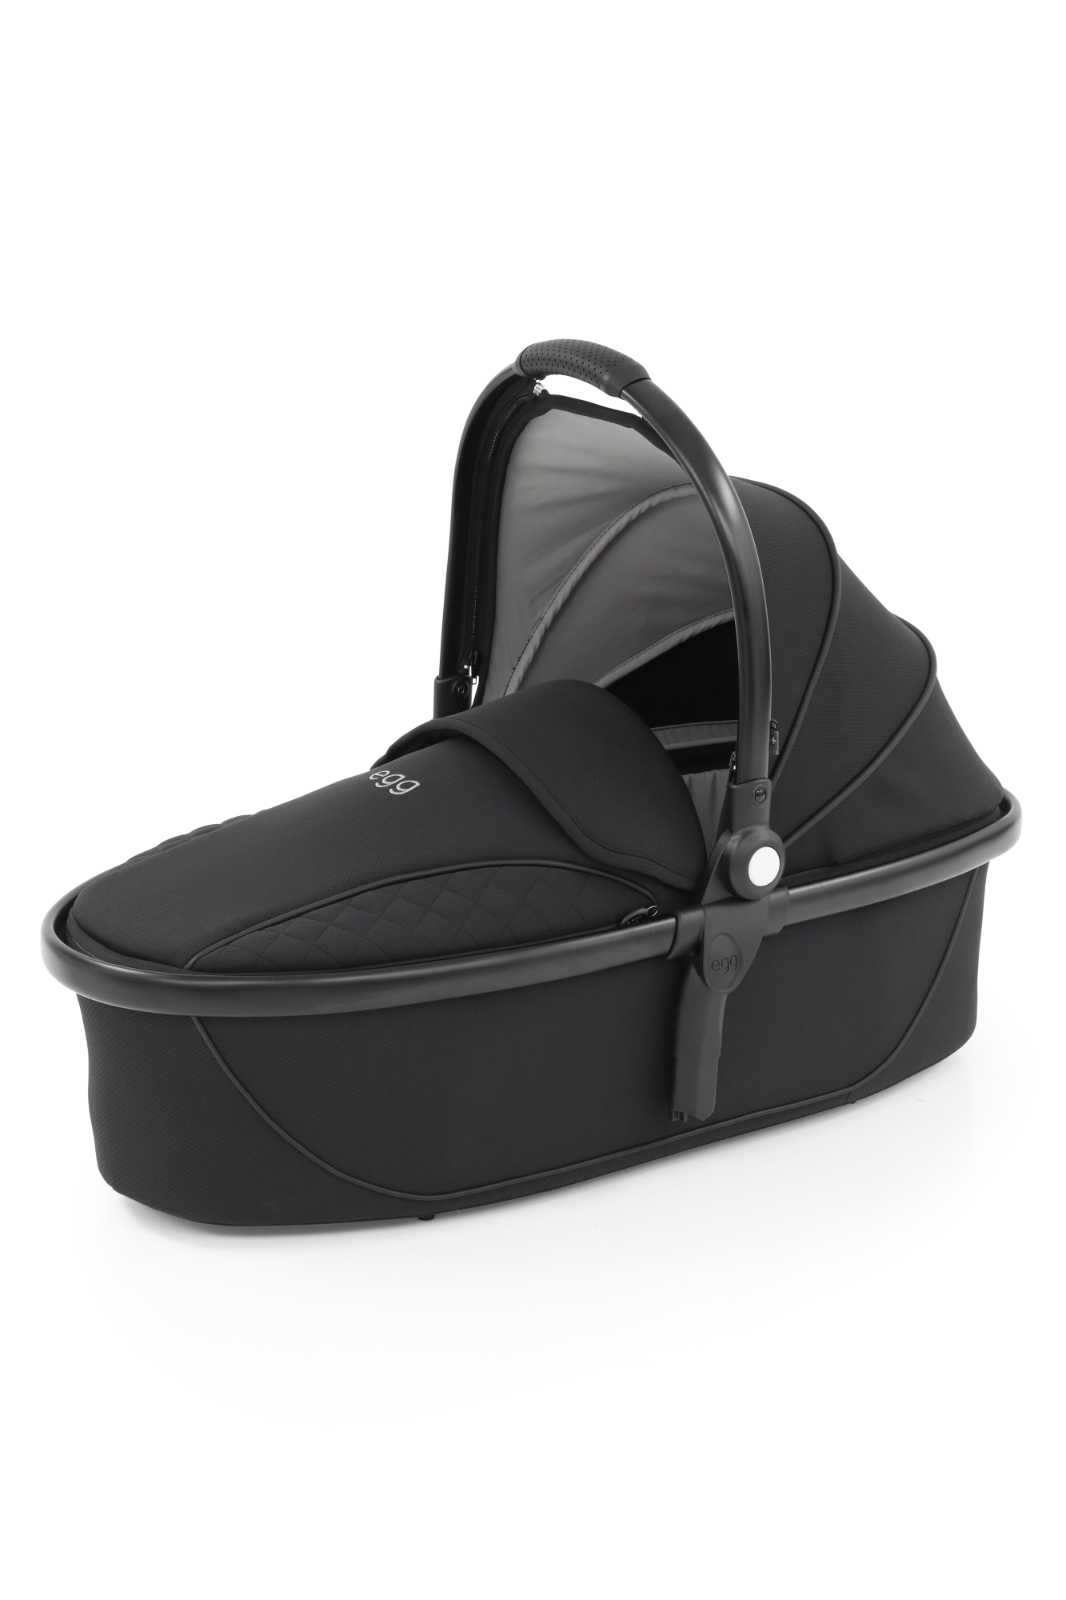 Egg 2 Carrycot Special Edition- Just Black